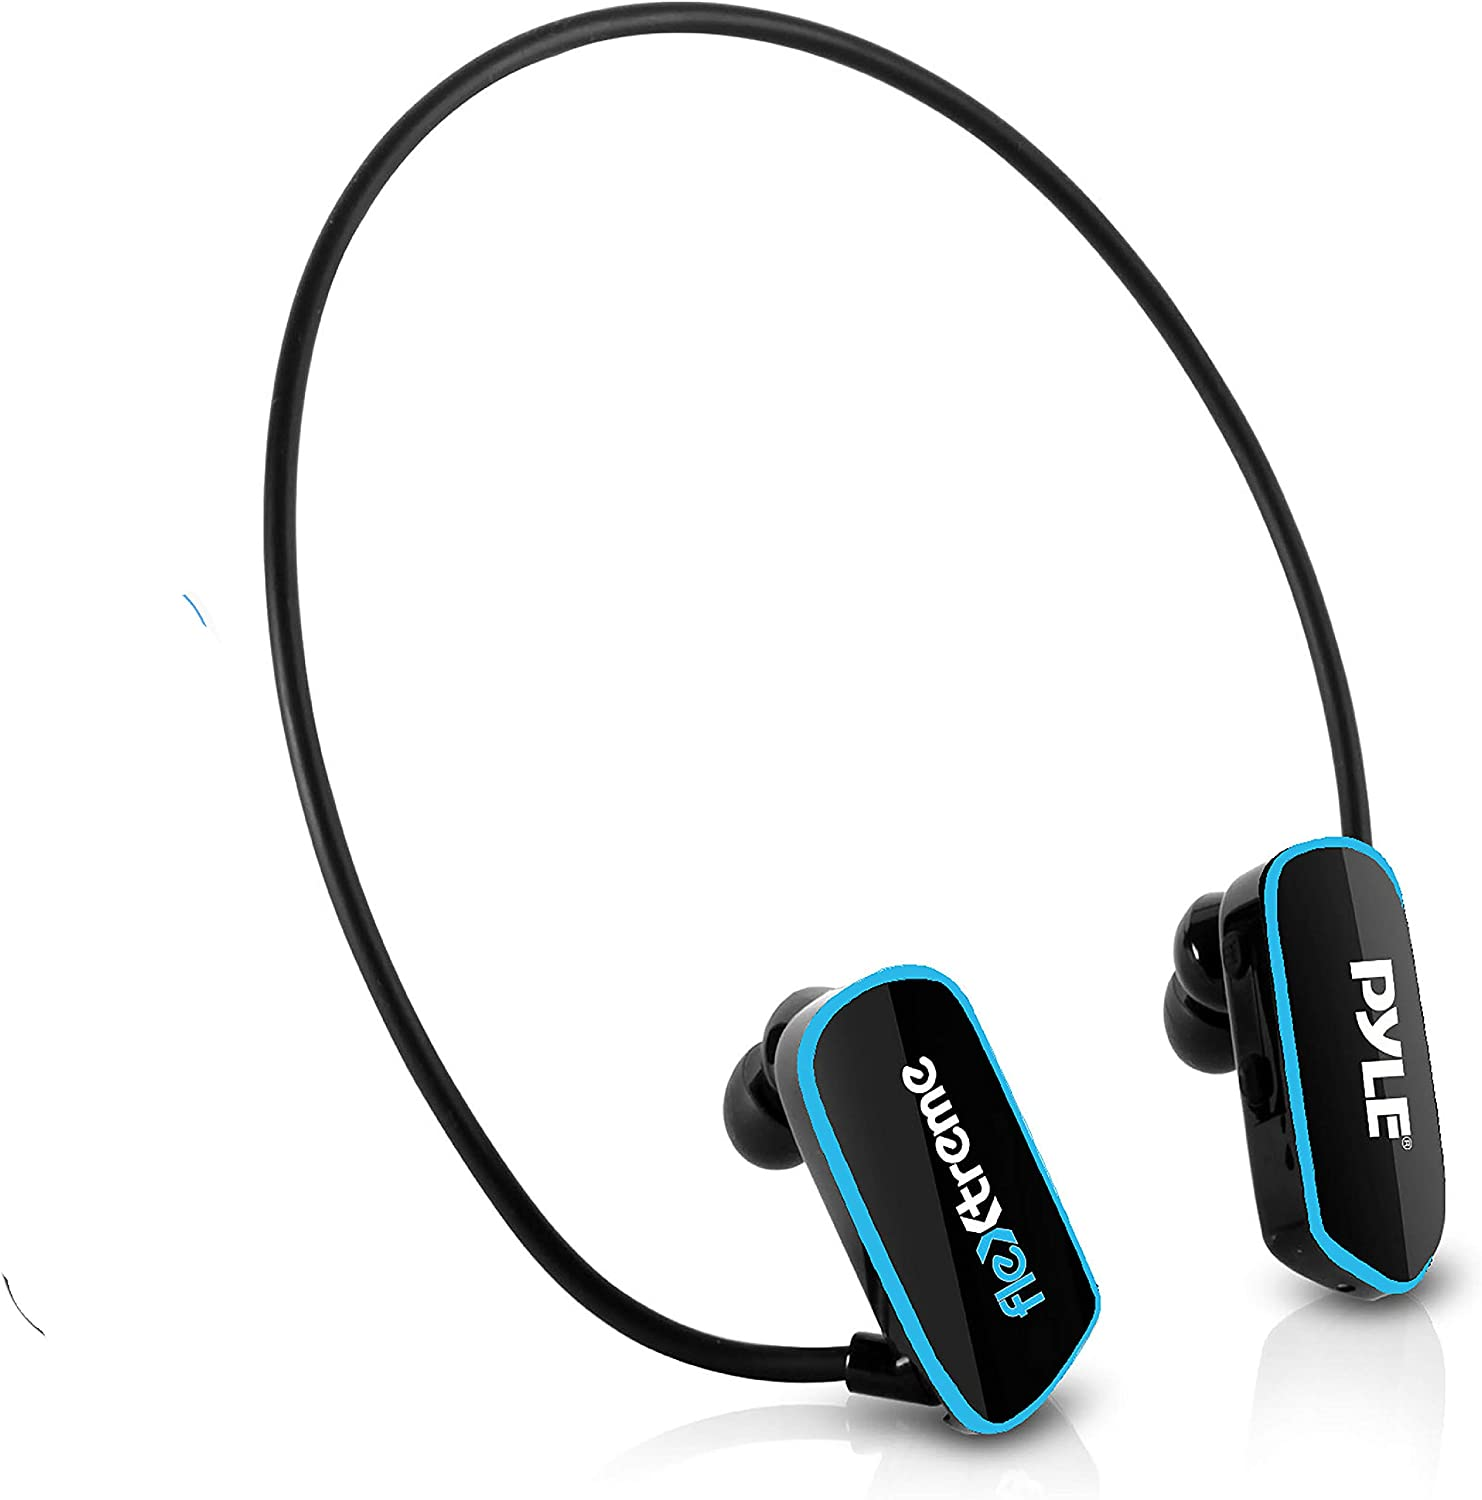 Pyle Bluetooth MP3 Swimming Headphones